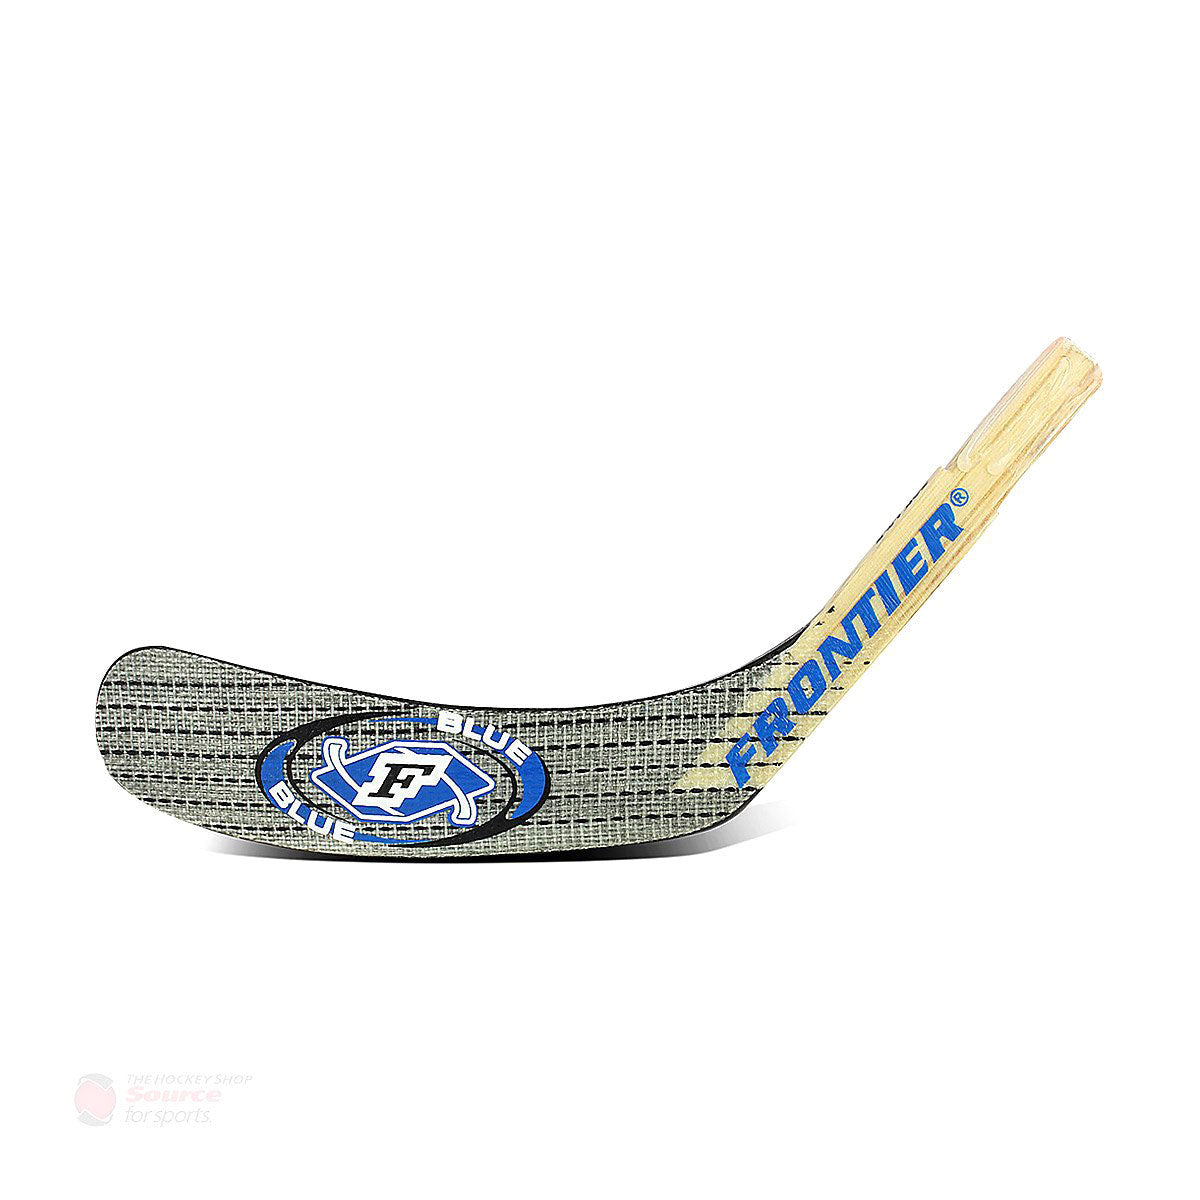 Frontier F-Blue ABS Standard Senior Wood Hockey Blade